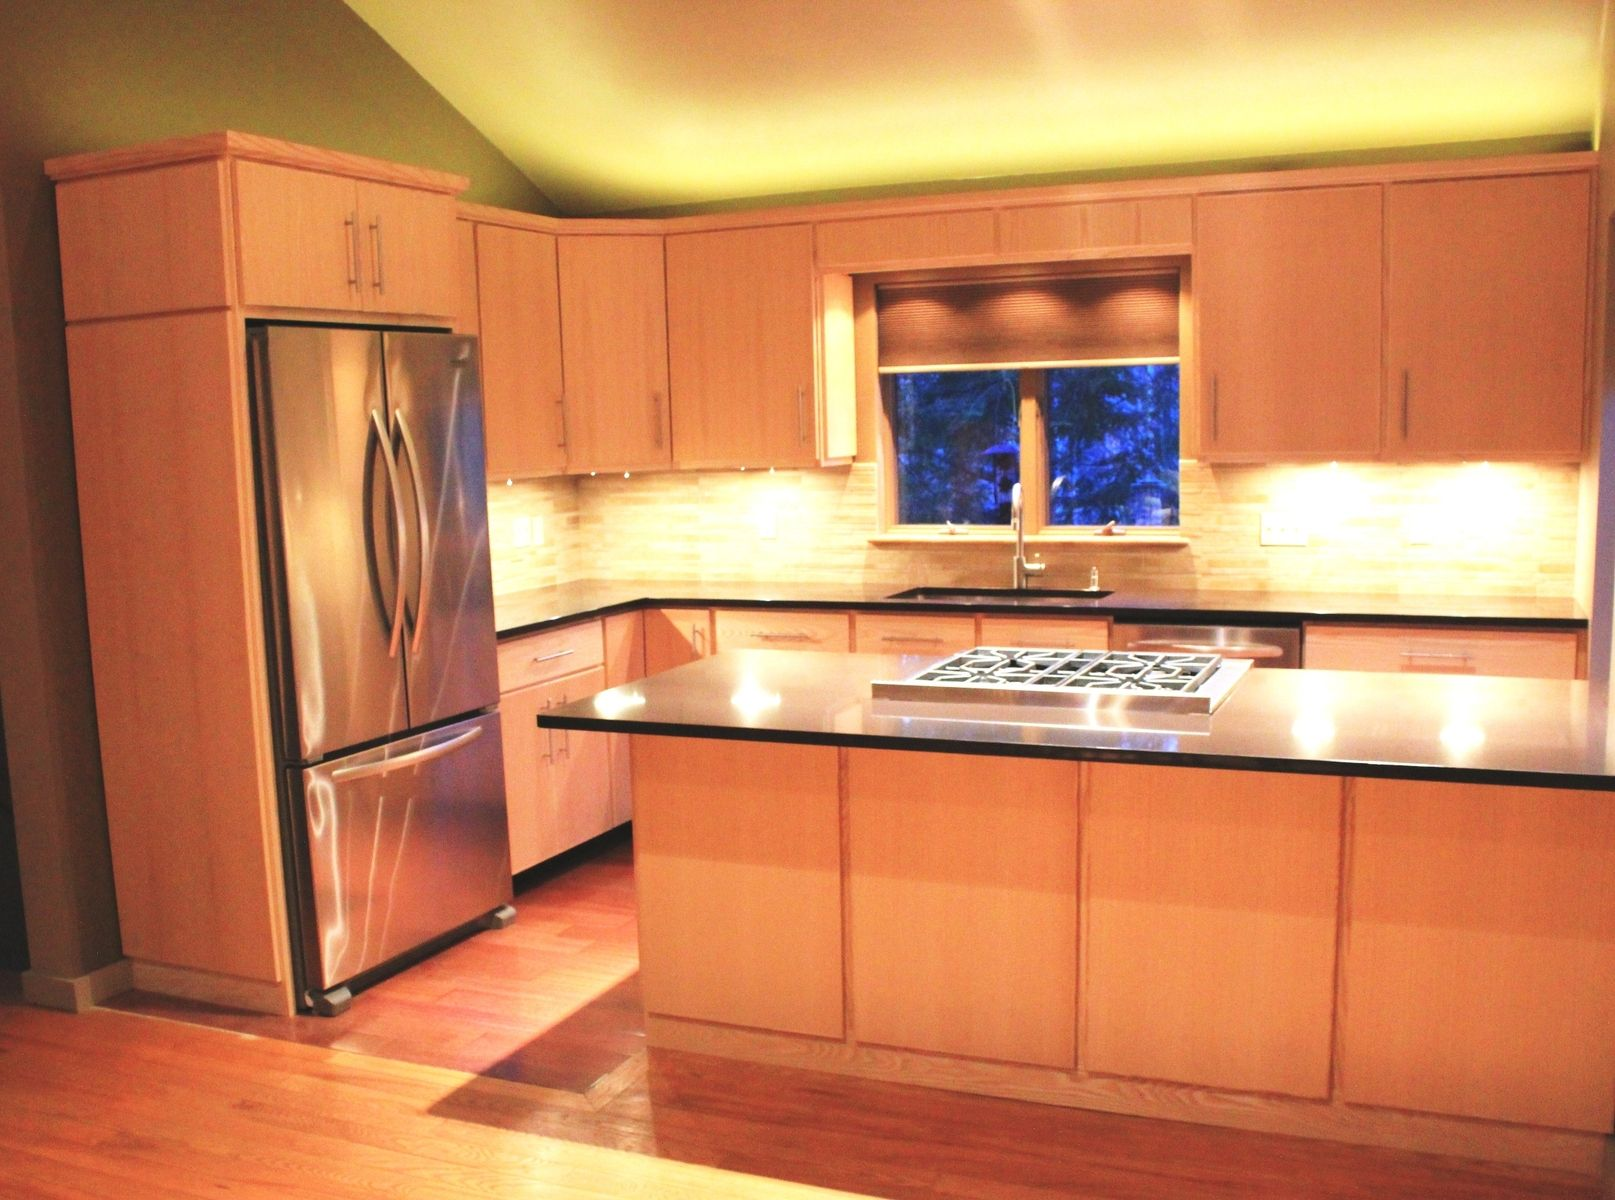 ash kitchen cabinets decor hand crafted custom by blue spruce joinery made